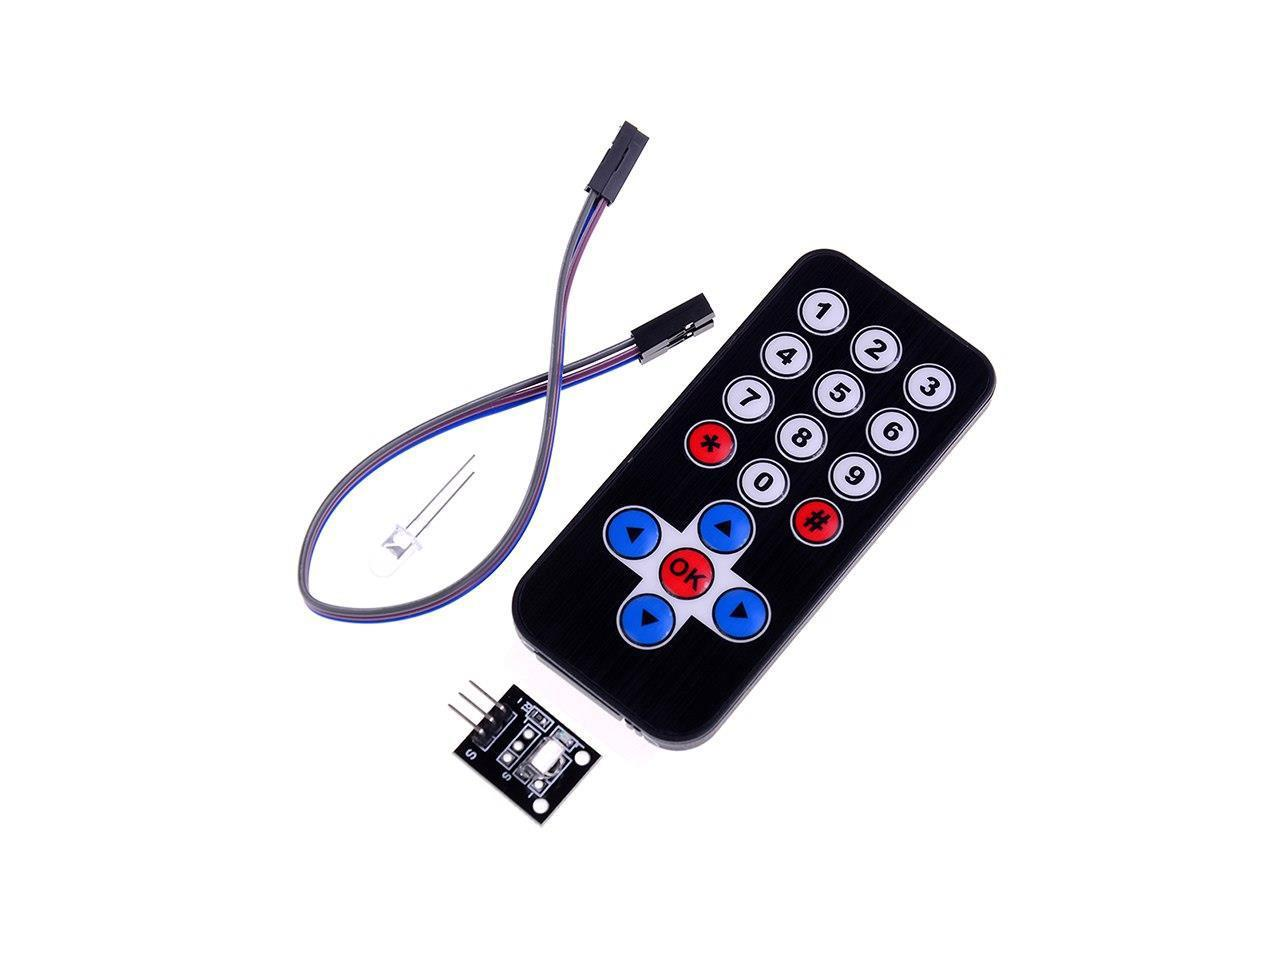 Smart electronics infrared ir wireless remote control module kits for arduiRDUK